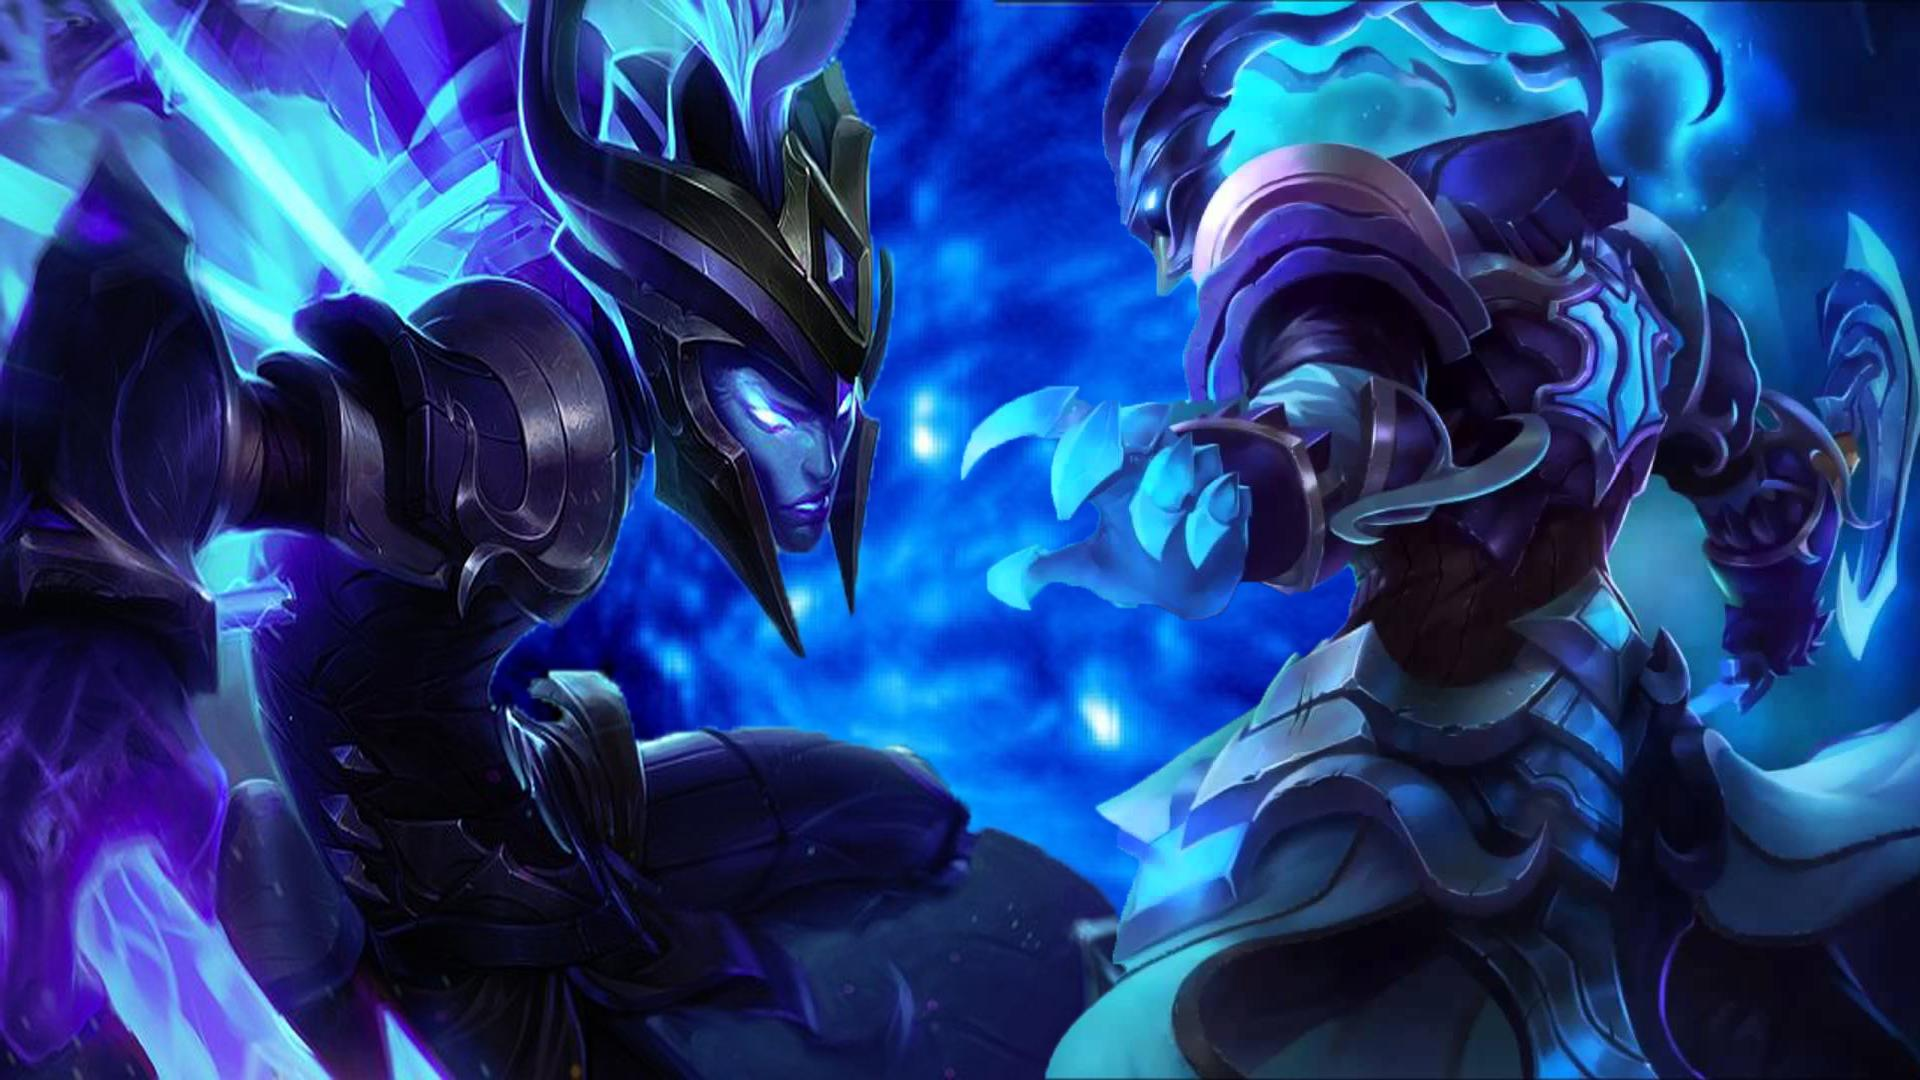 League Of Legends Championship Thresh Wallpapers High Thresh And